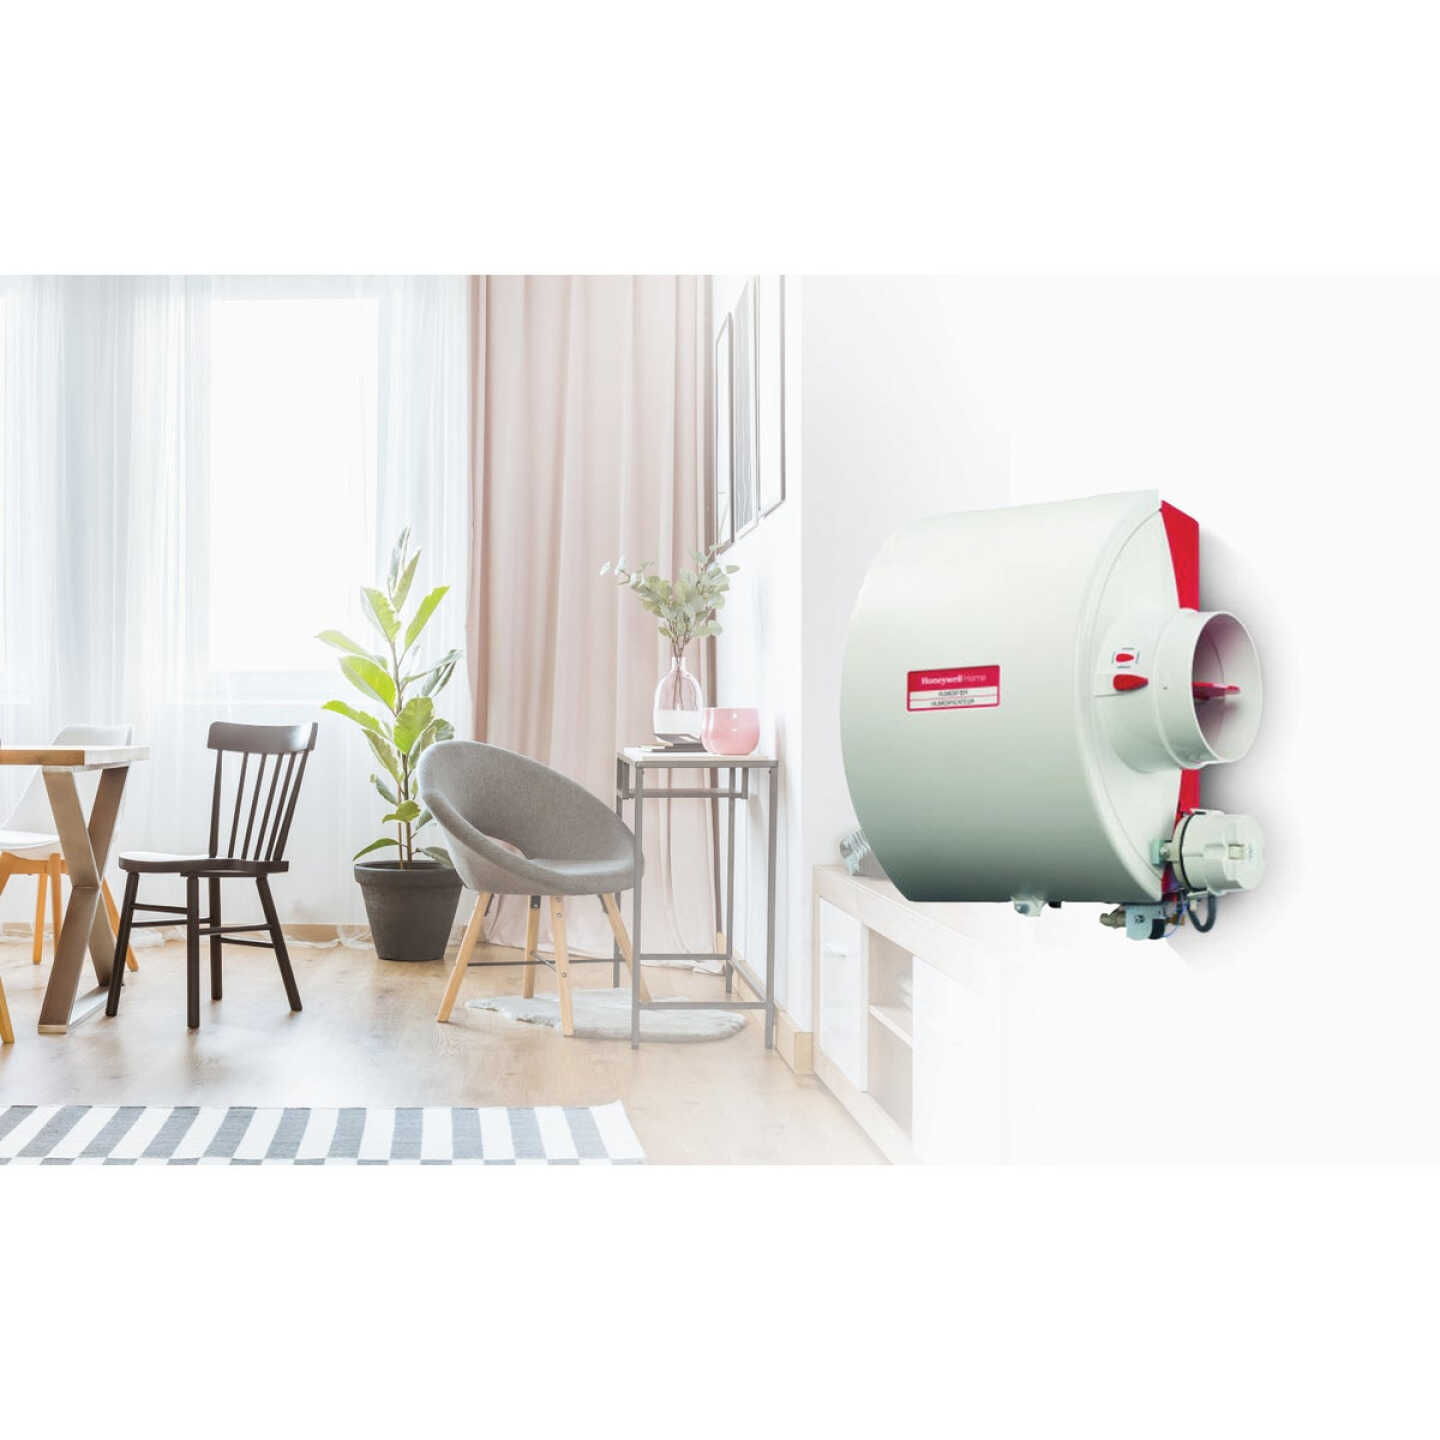 Honeywell Home 12.15 In. W. x 15.68 In. H. x 10.9 In. D. Whole House Flow-Thru Bypass Furnace Humidifier Image 2